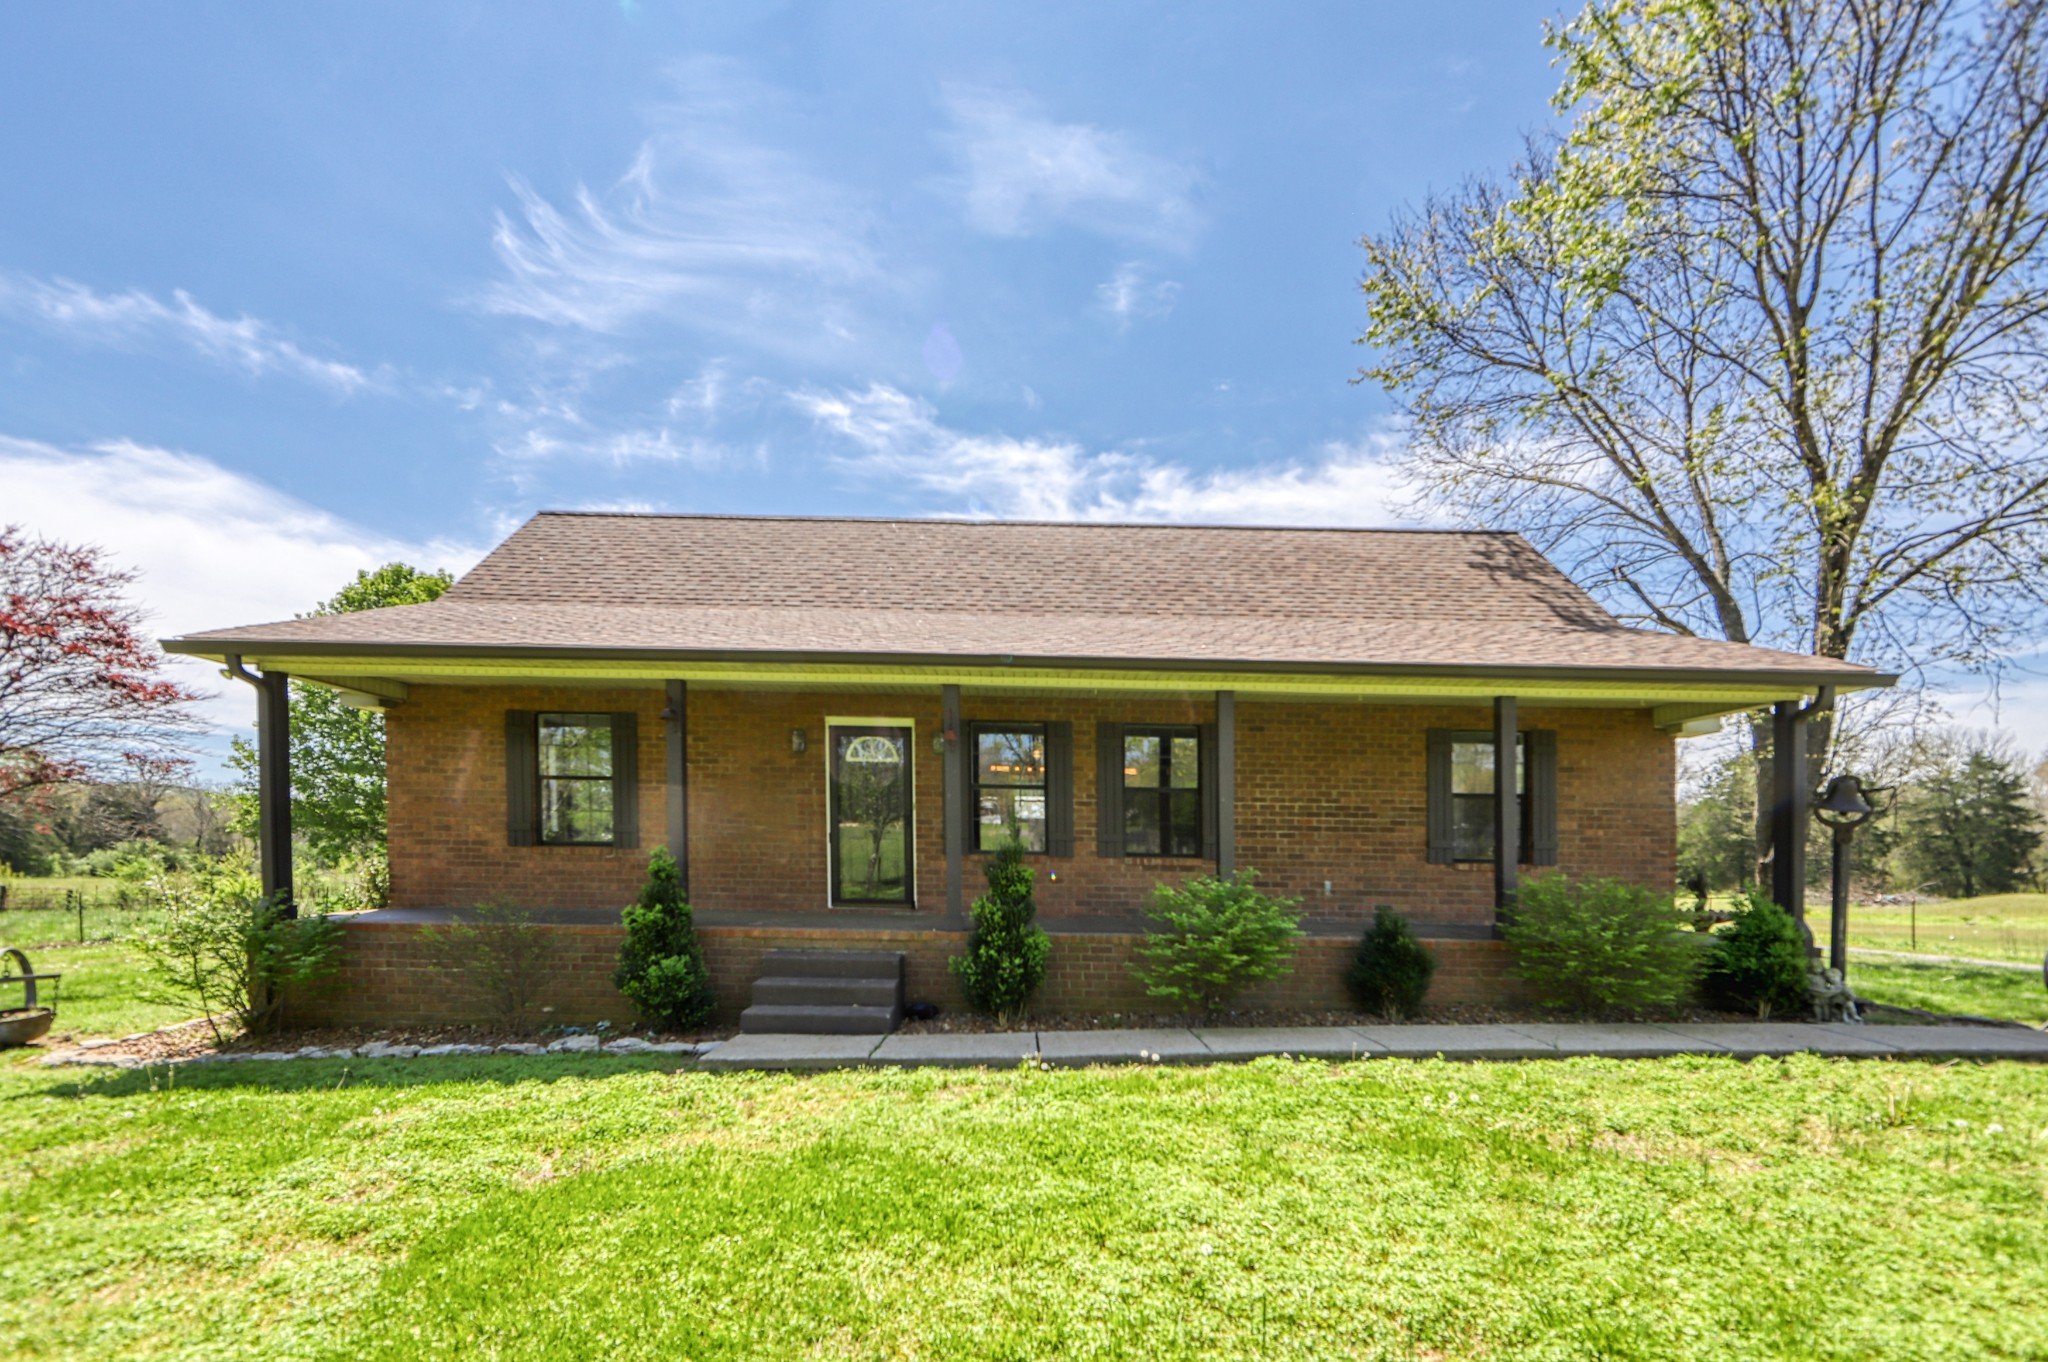 3809 Commerce Rd, S, Watertown, TN 37184 - Watertown, TN real estate listing